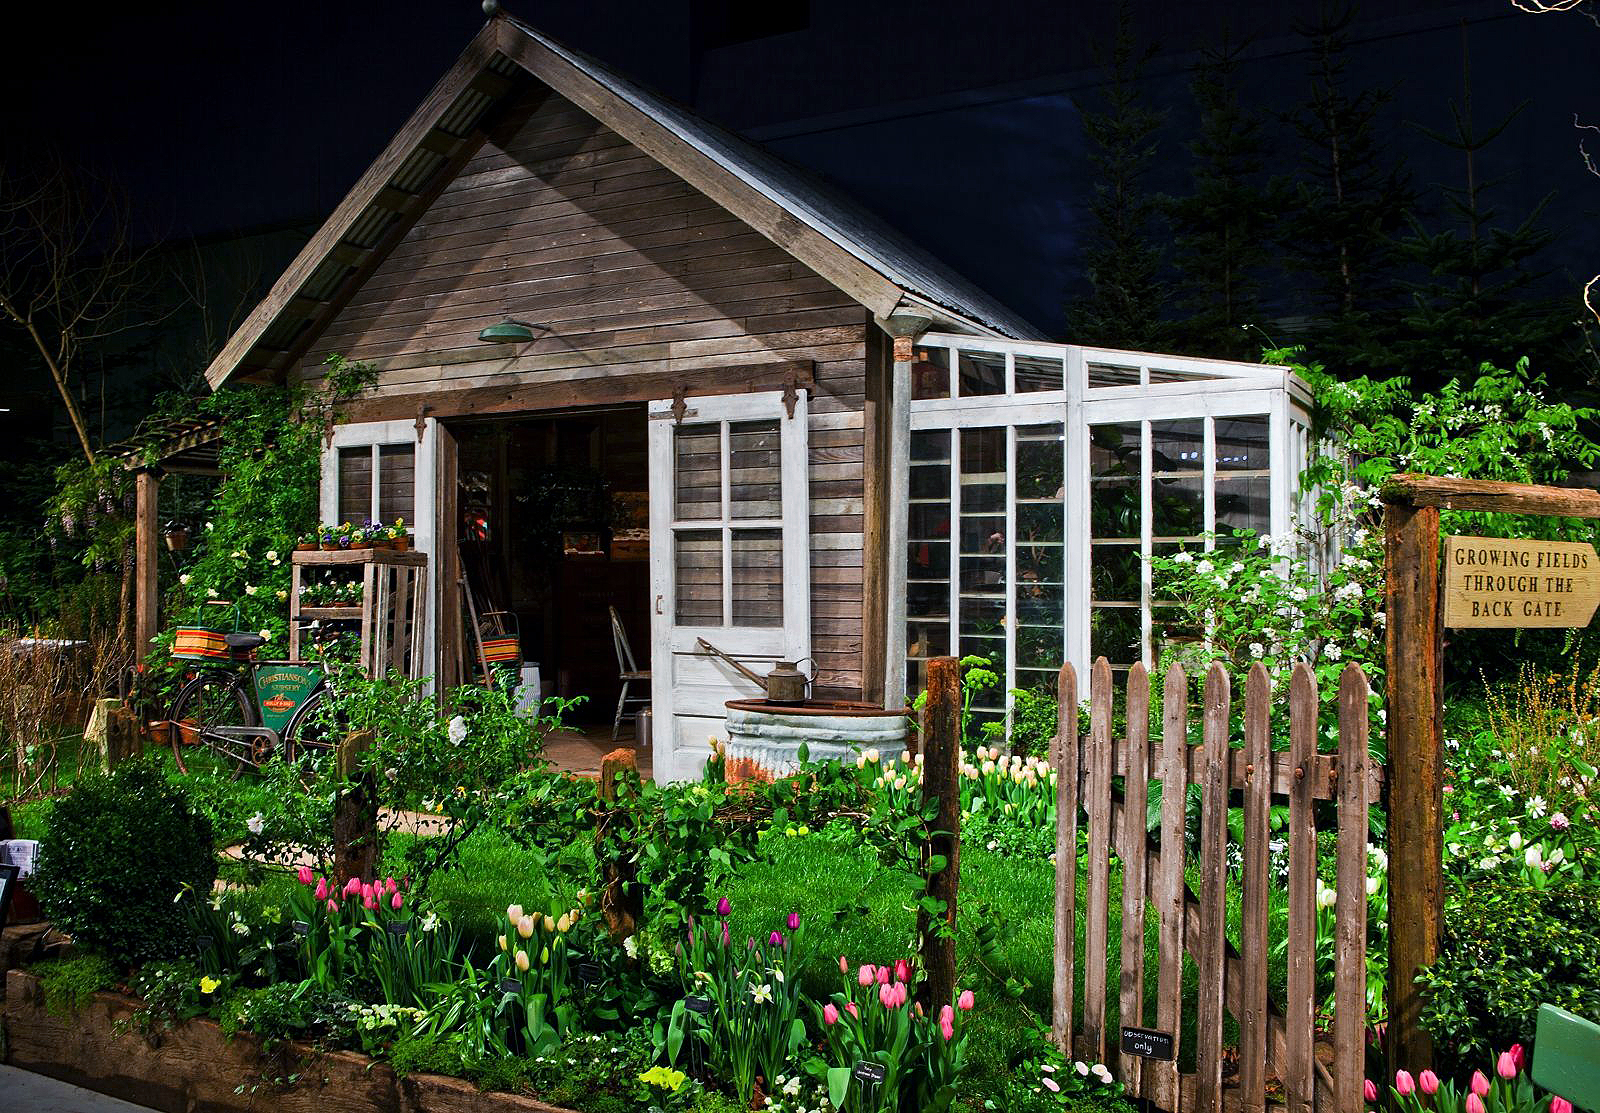 Great gardening ideas at 2012 northwest flower garden show for Garden building ideas